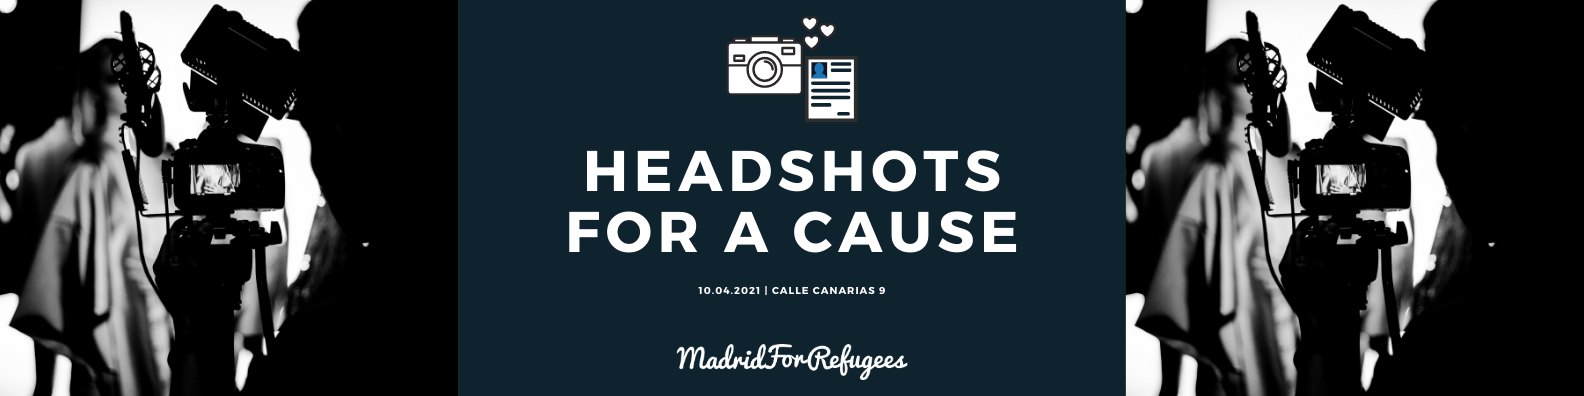 Headshots For a Cause!